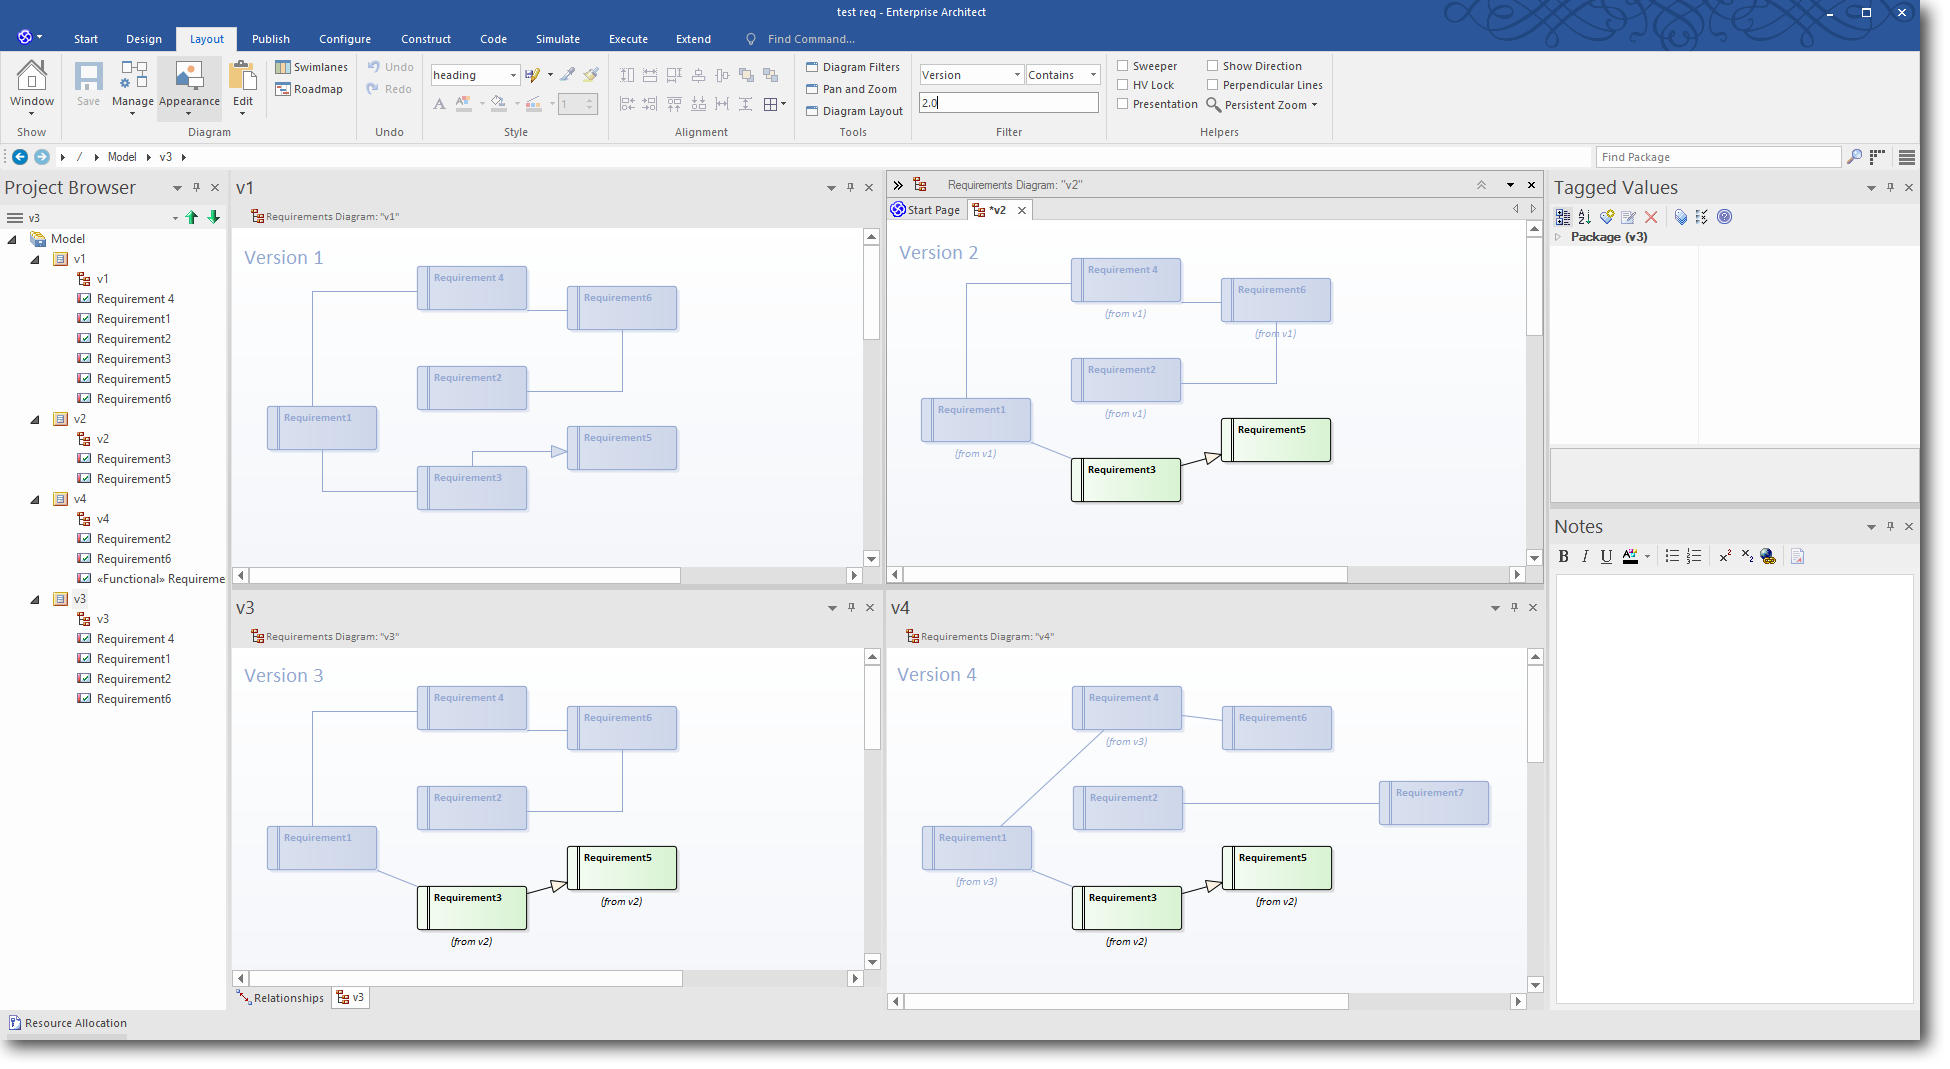 Enterprise Architect 13: Time Aware Modeling - Using a Diagram Filter to highlight Version 2.0 elements